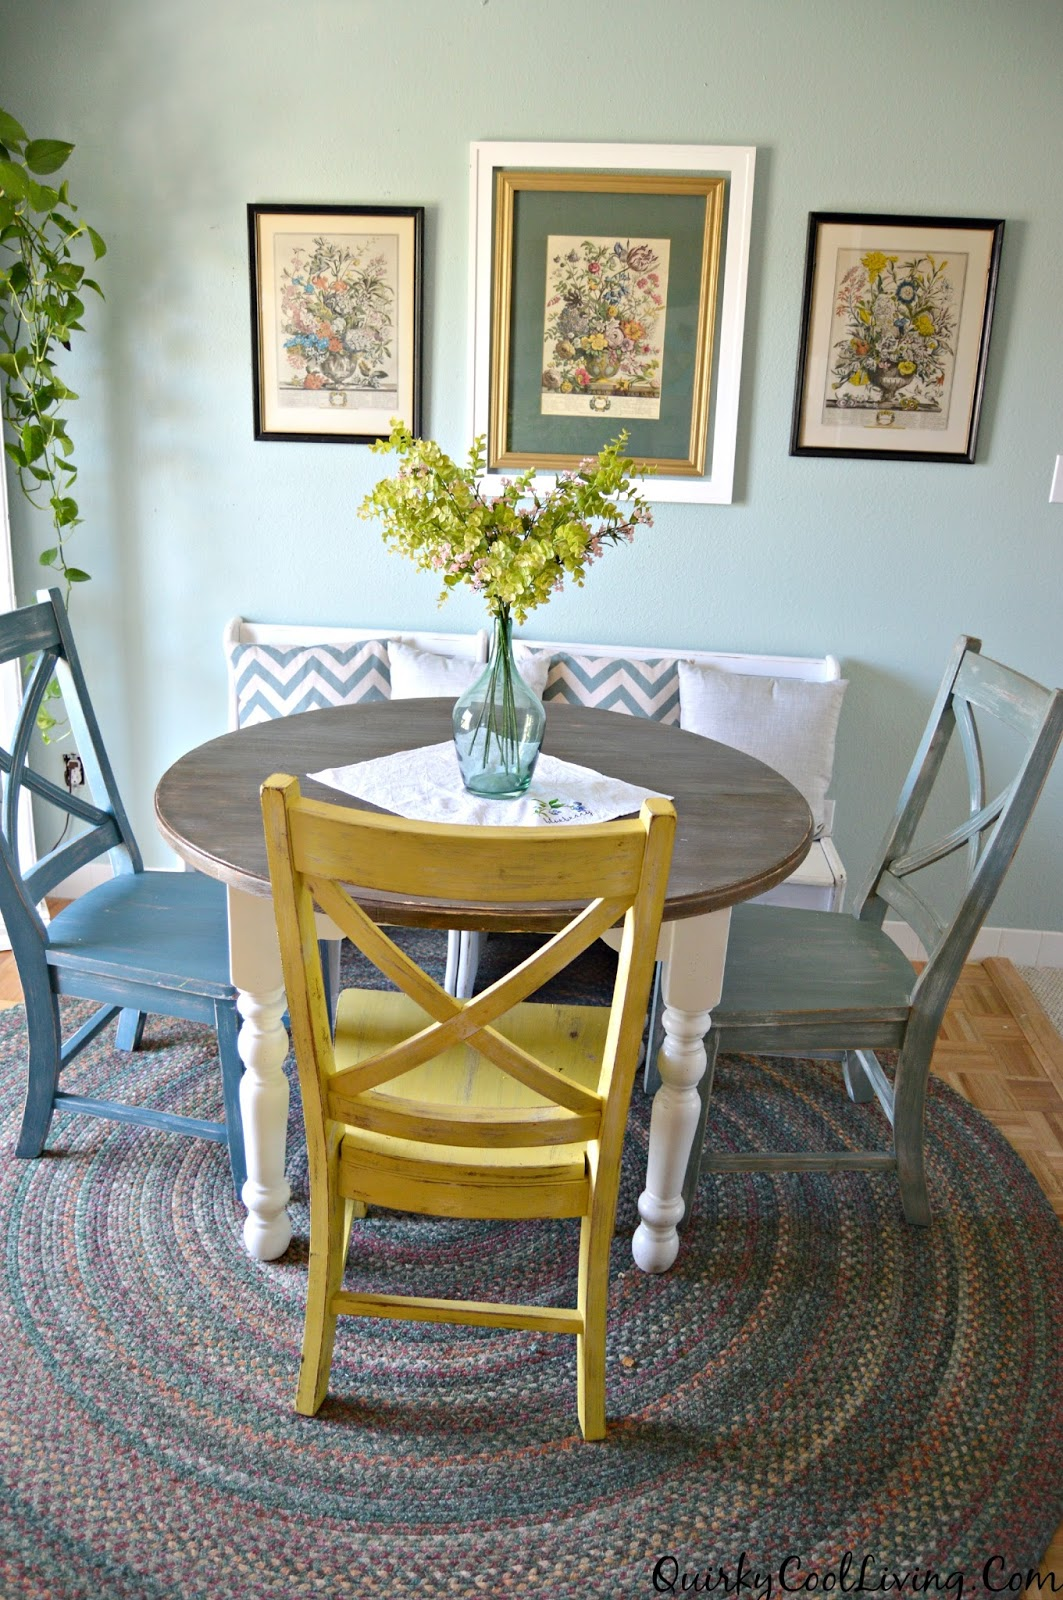 Image Result For Round Dining Table For Small Space